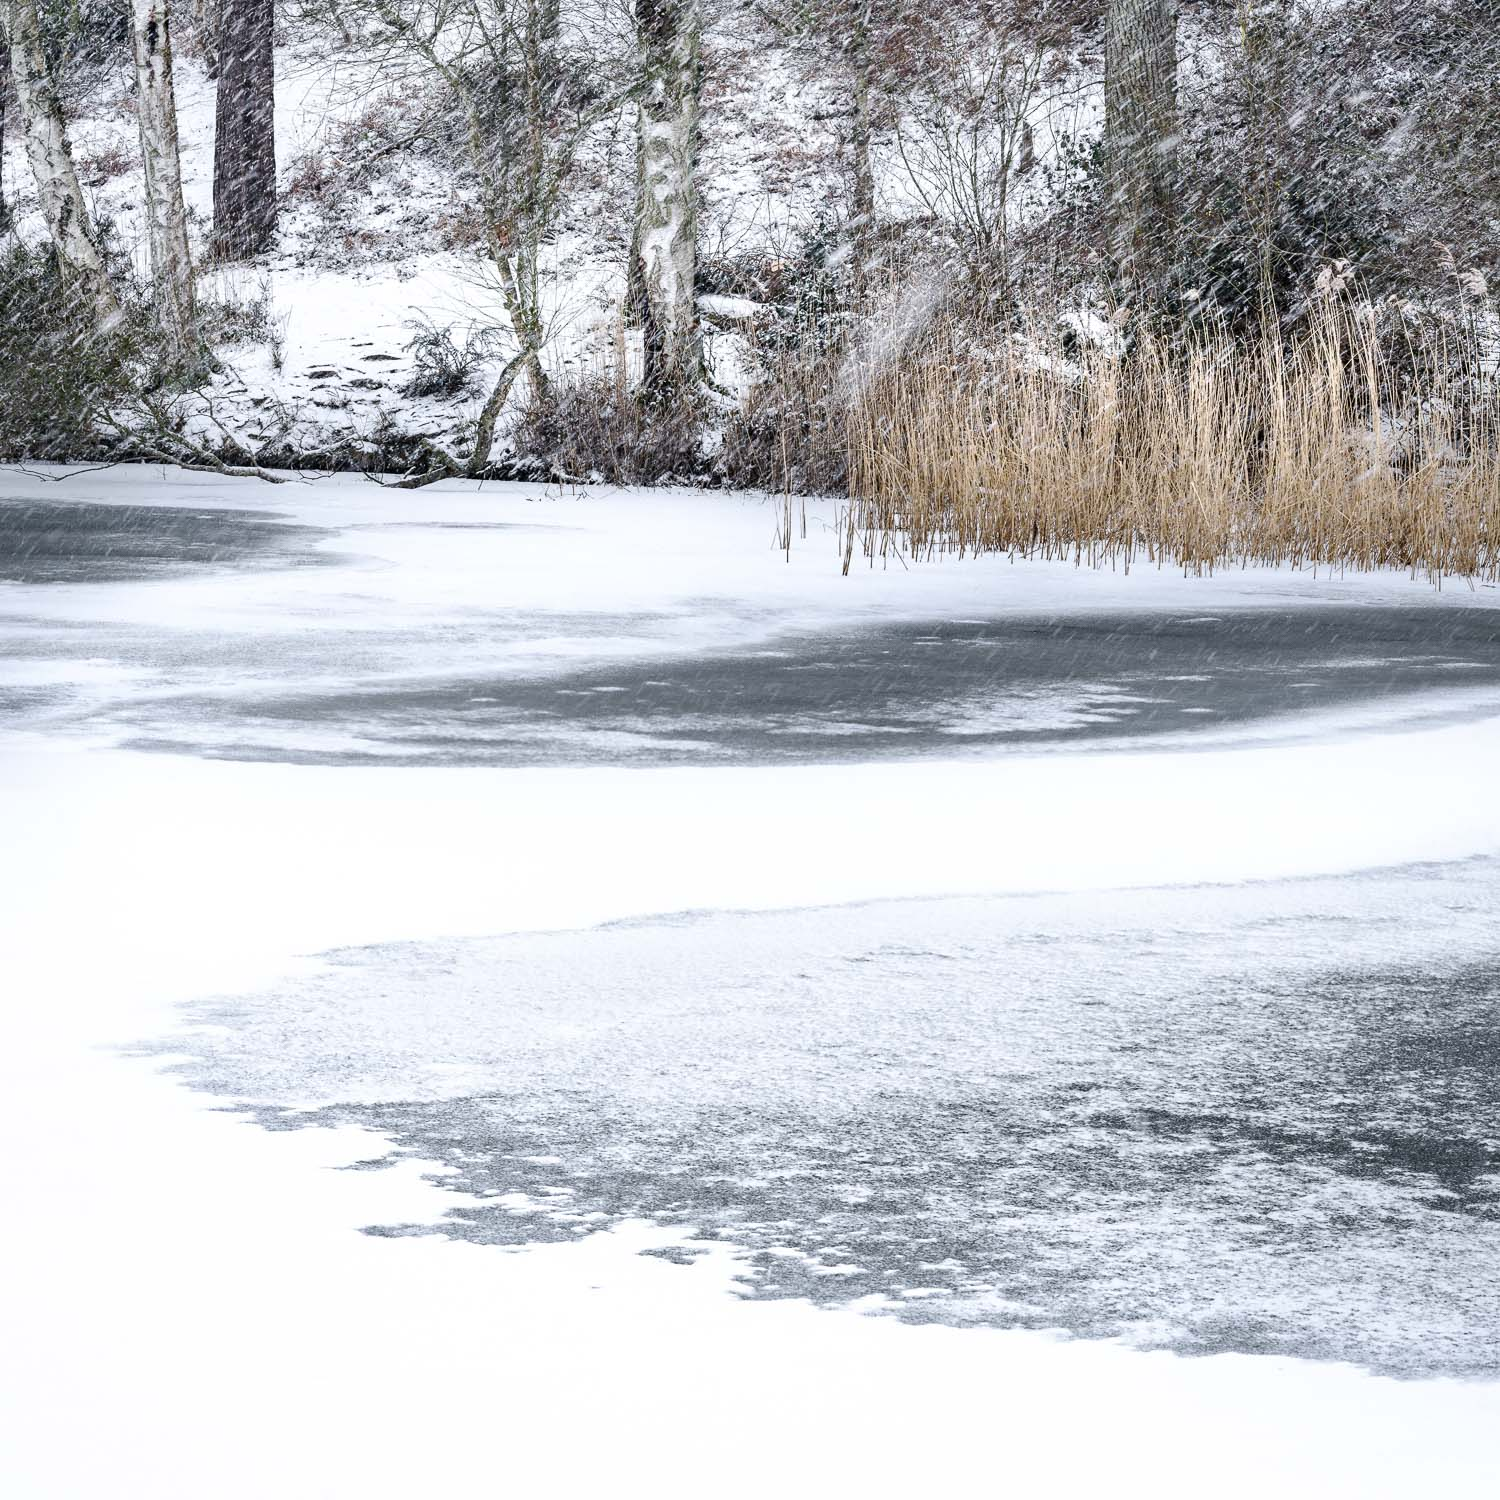 A rare site of Ice Patterns on the Lake at Stockgrove, with the snow continuing to fall heavily.